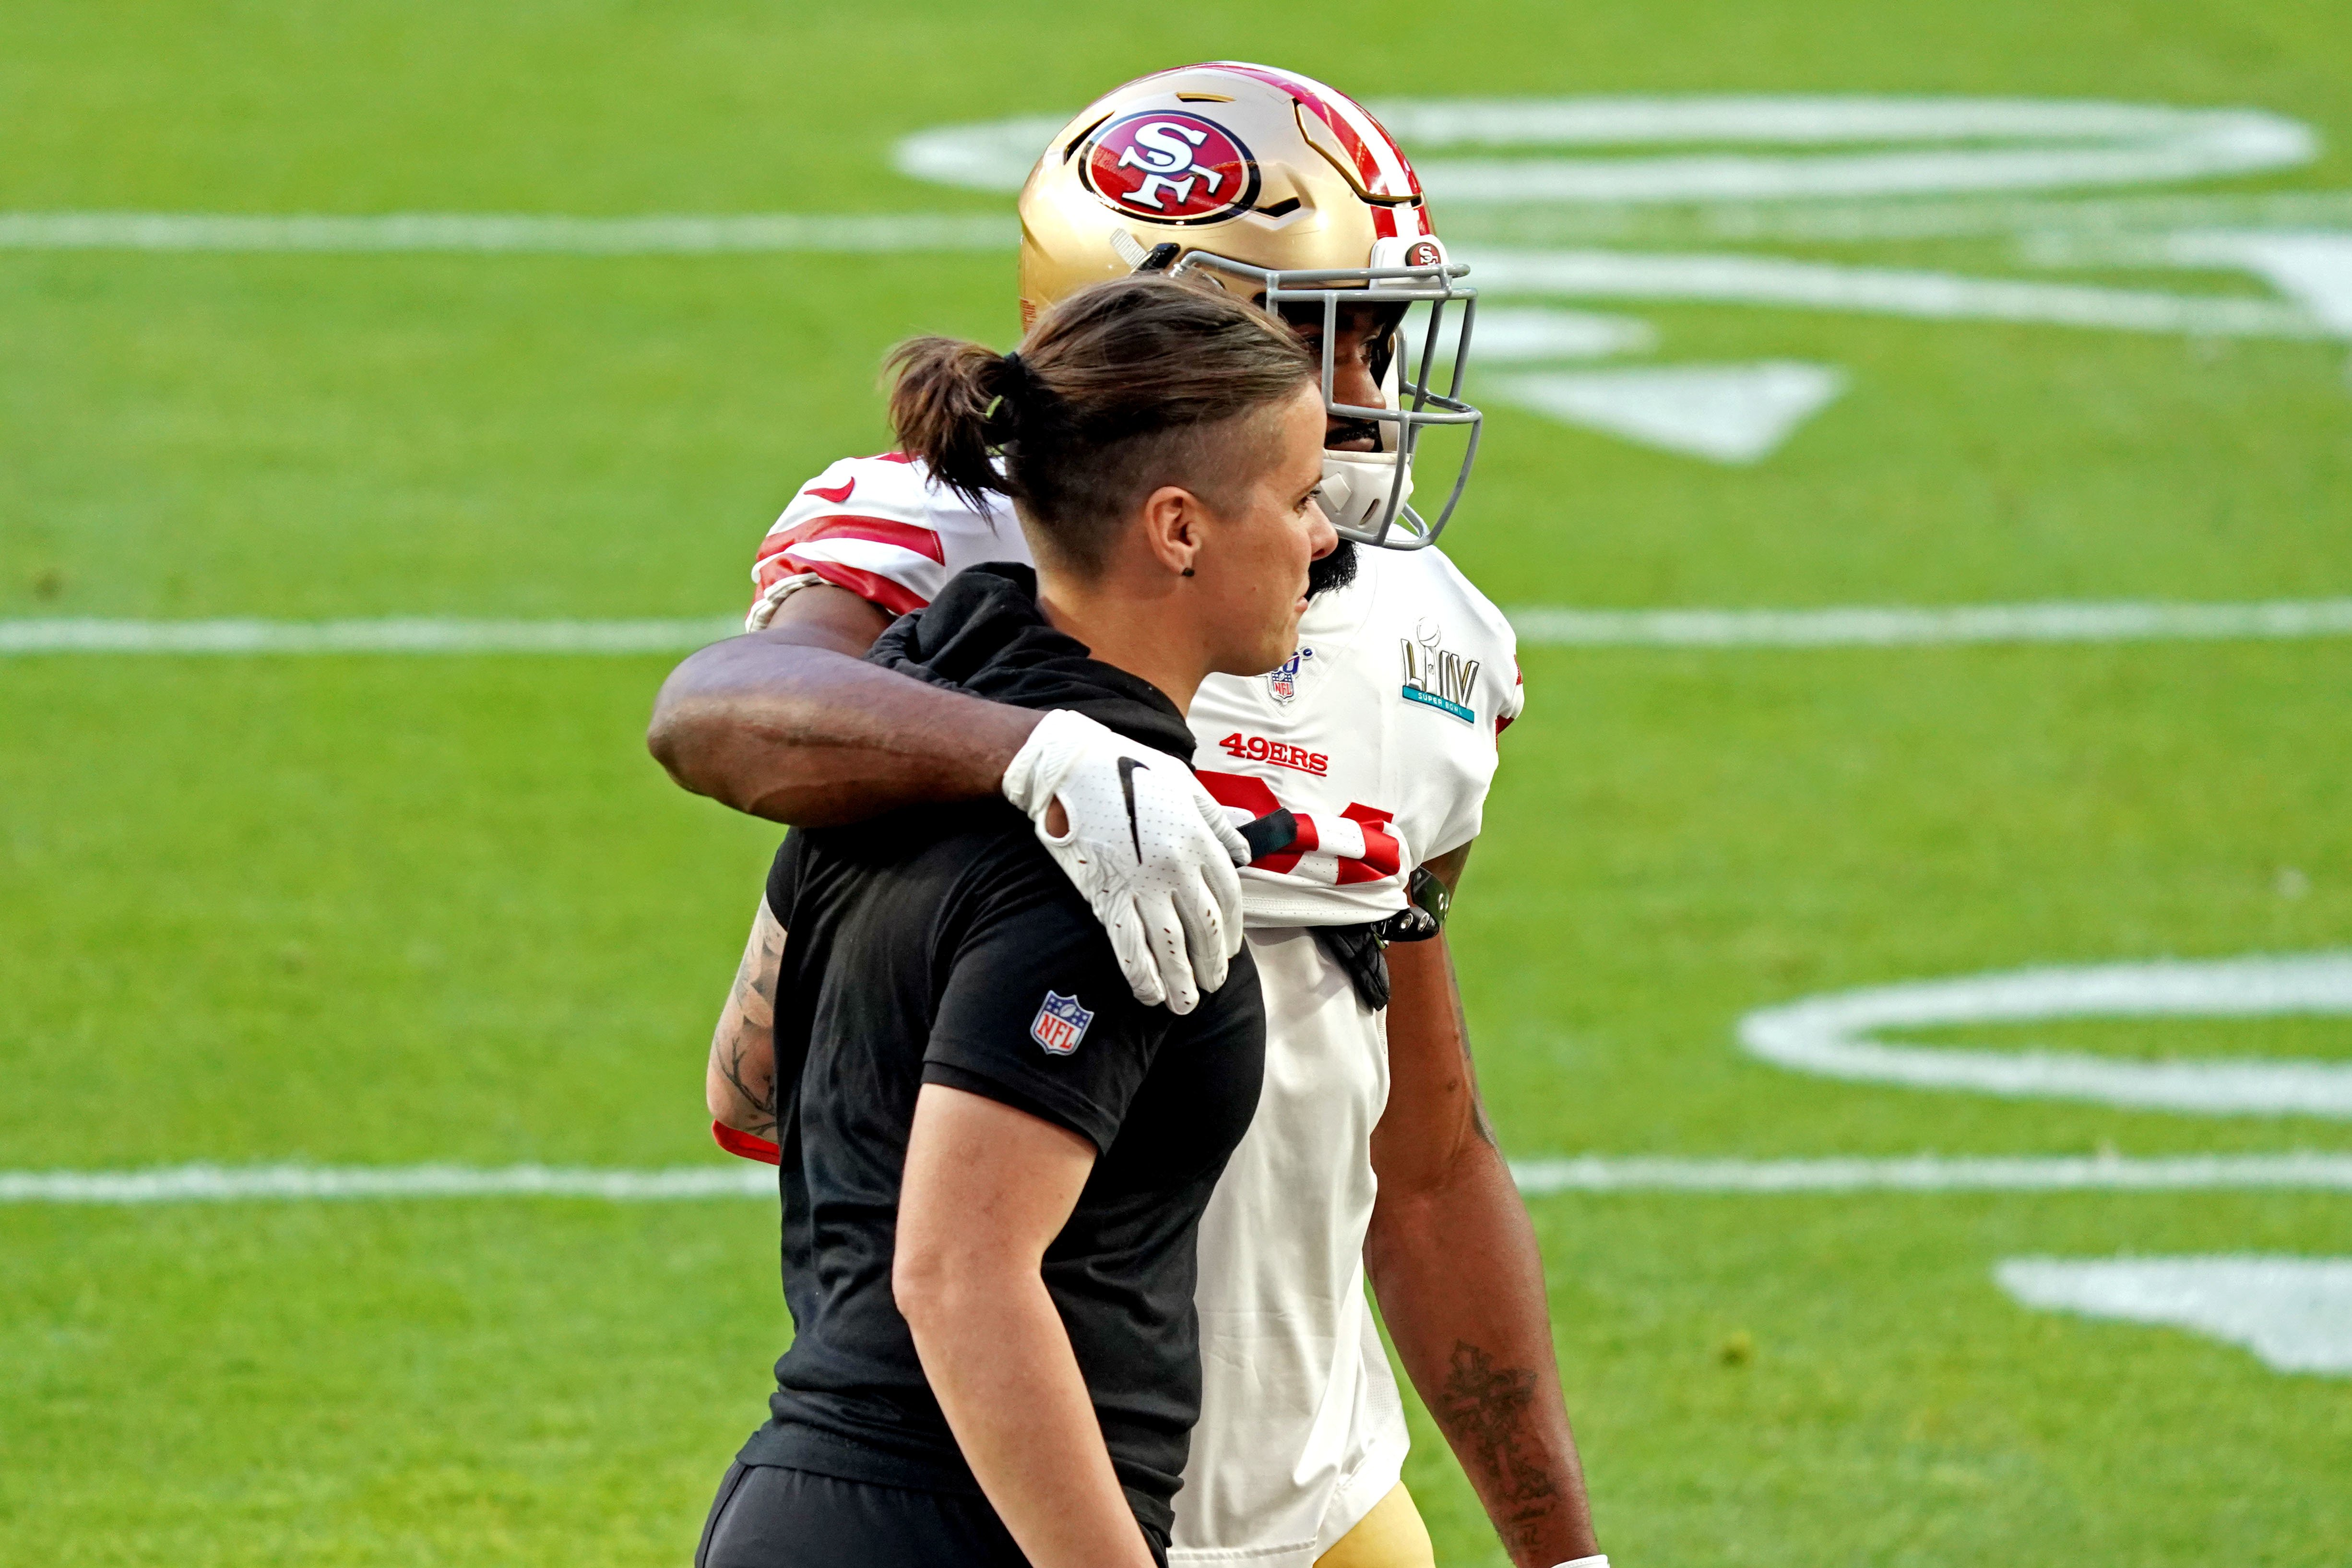 San Francisco 49ers' history-making offensive coach Katie Sowers says Super Bowl defeat to Kansas City Chiefs reminds her of 'all the hatred in this world'